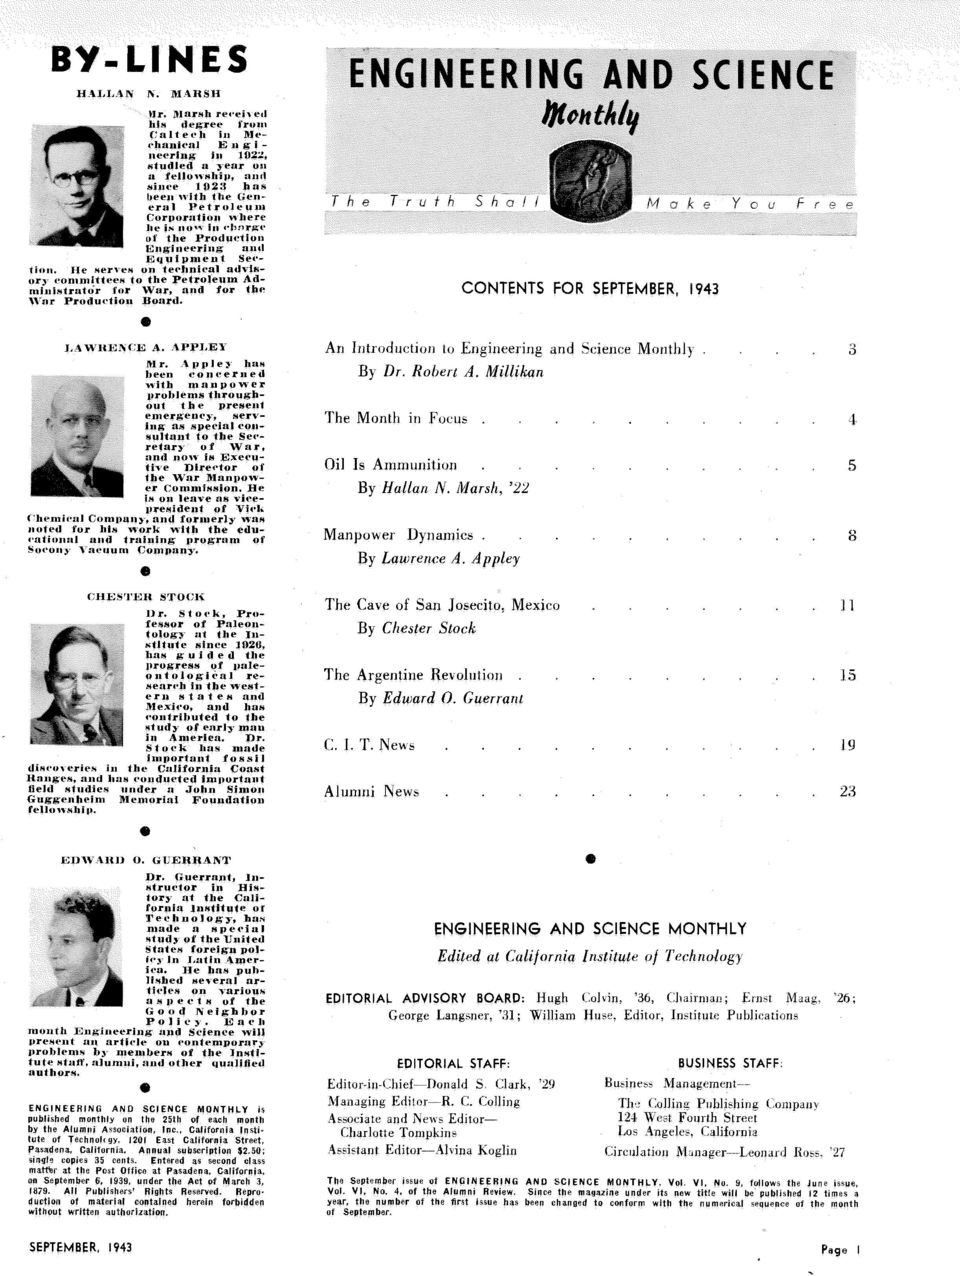 rhnrsr i~t the Produ~'tion Engineering ant1 Eyllipment Sefon te<*hniã ' advis- 3 the Petroleum Ad- War, and for the Board. CONTENTS FOR SEPTEMBER, 1943 l.4witka Cli; A. \PPJ,E1 Mr. \l~nle?